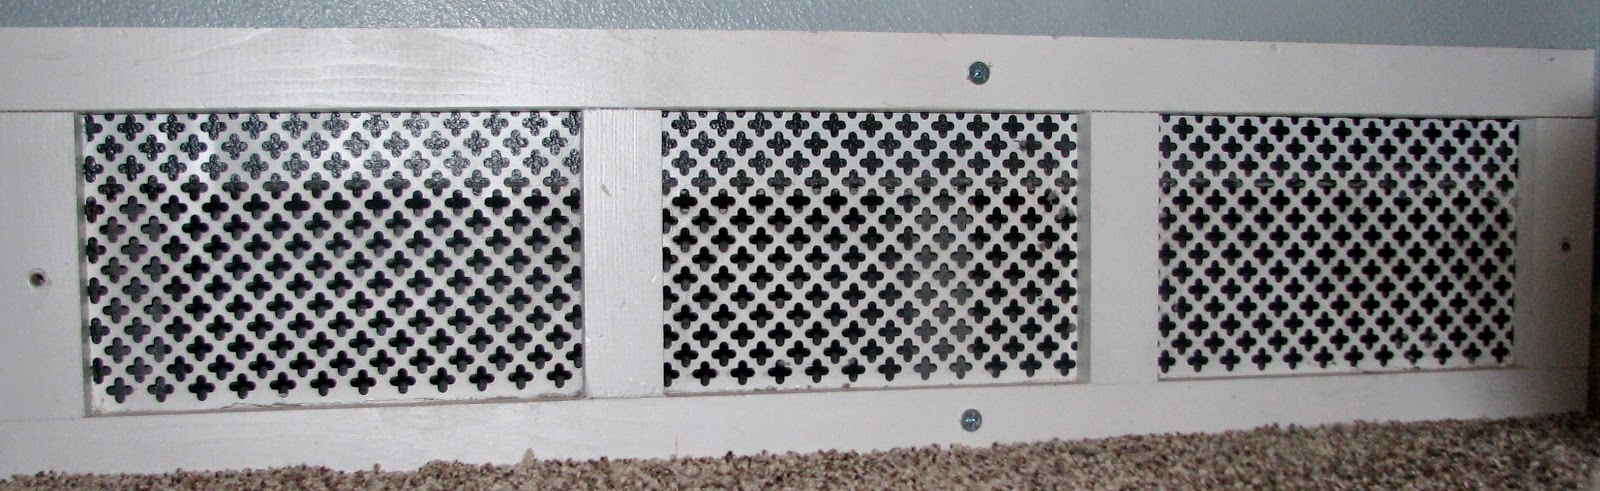 My So Called DIY Blog: DIY Decorative Air Intake Grate